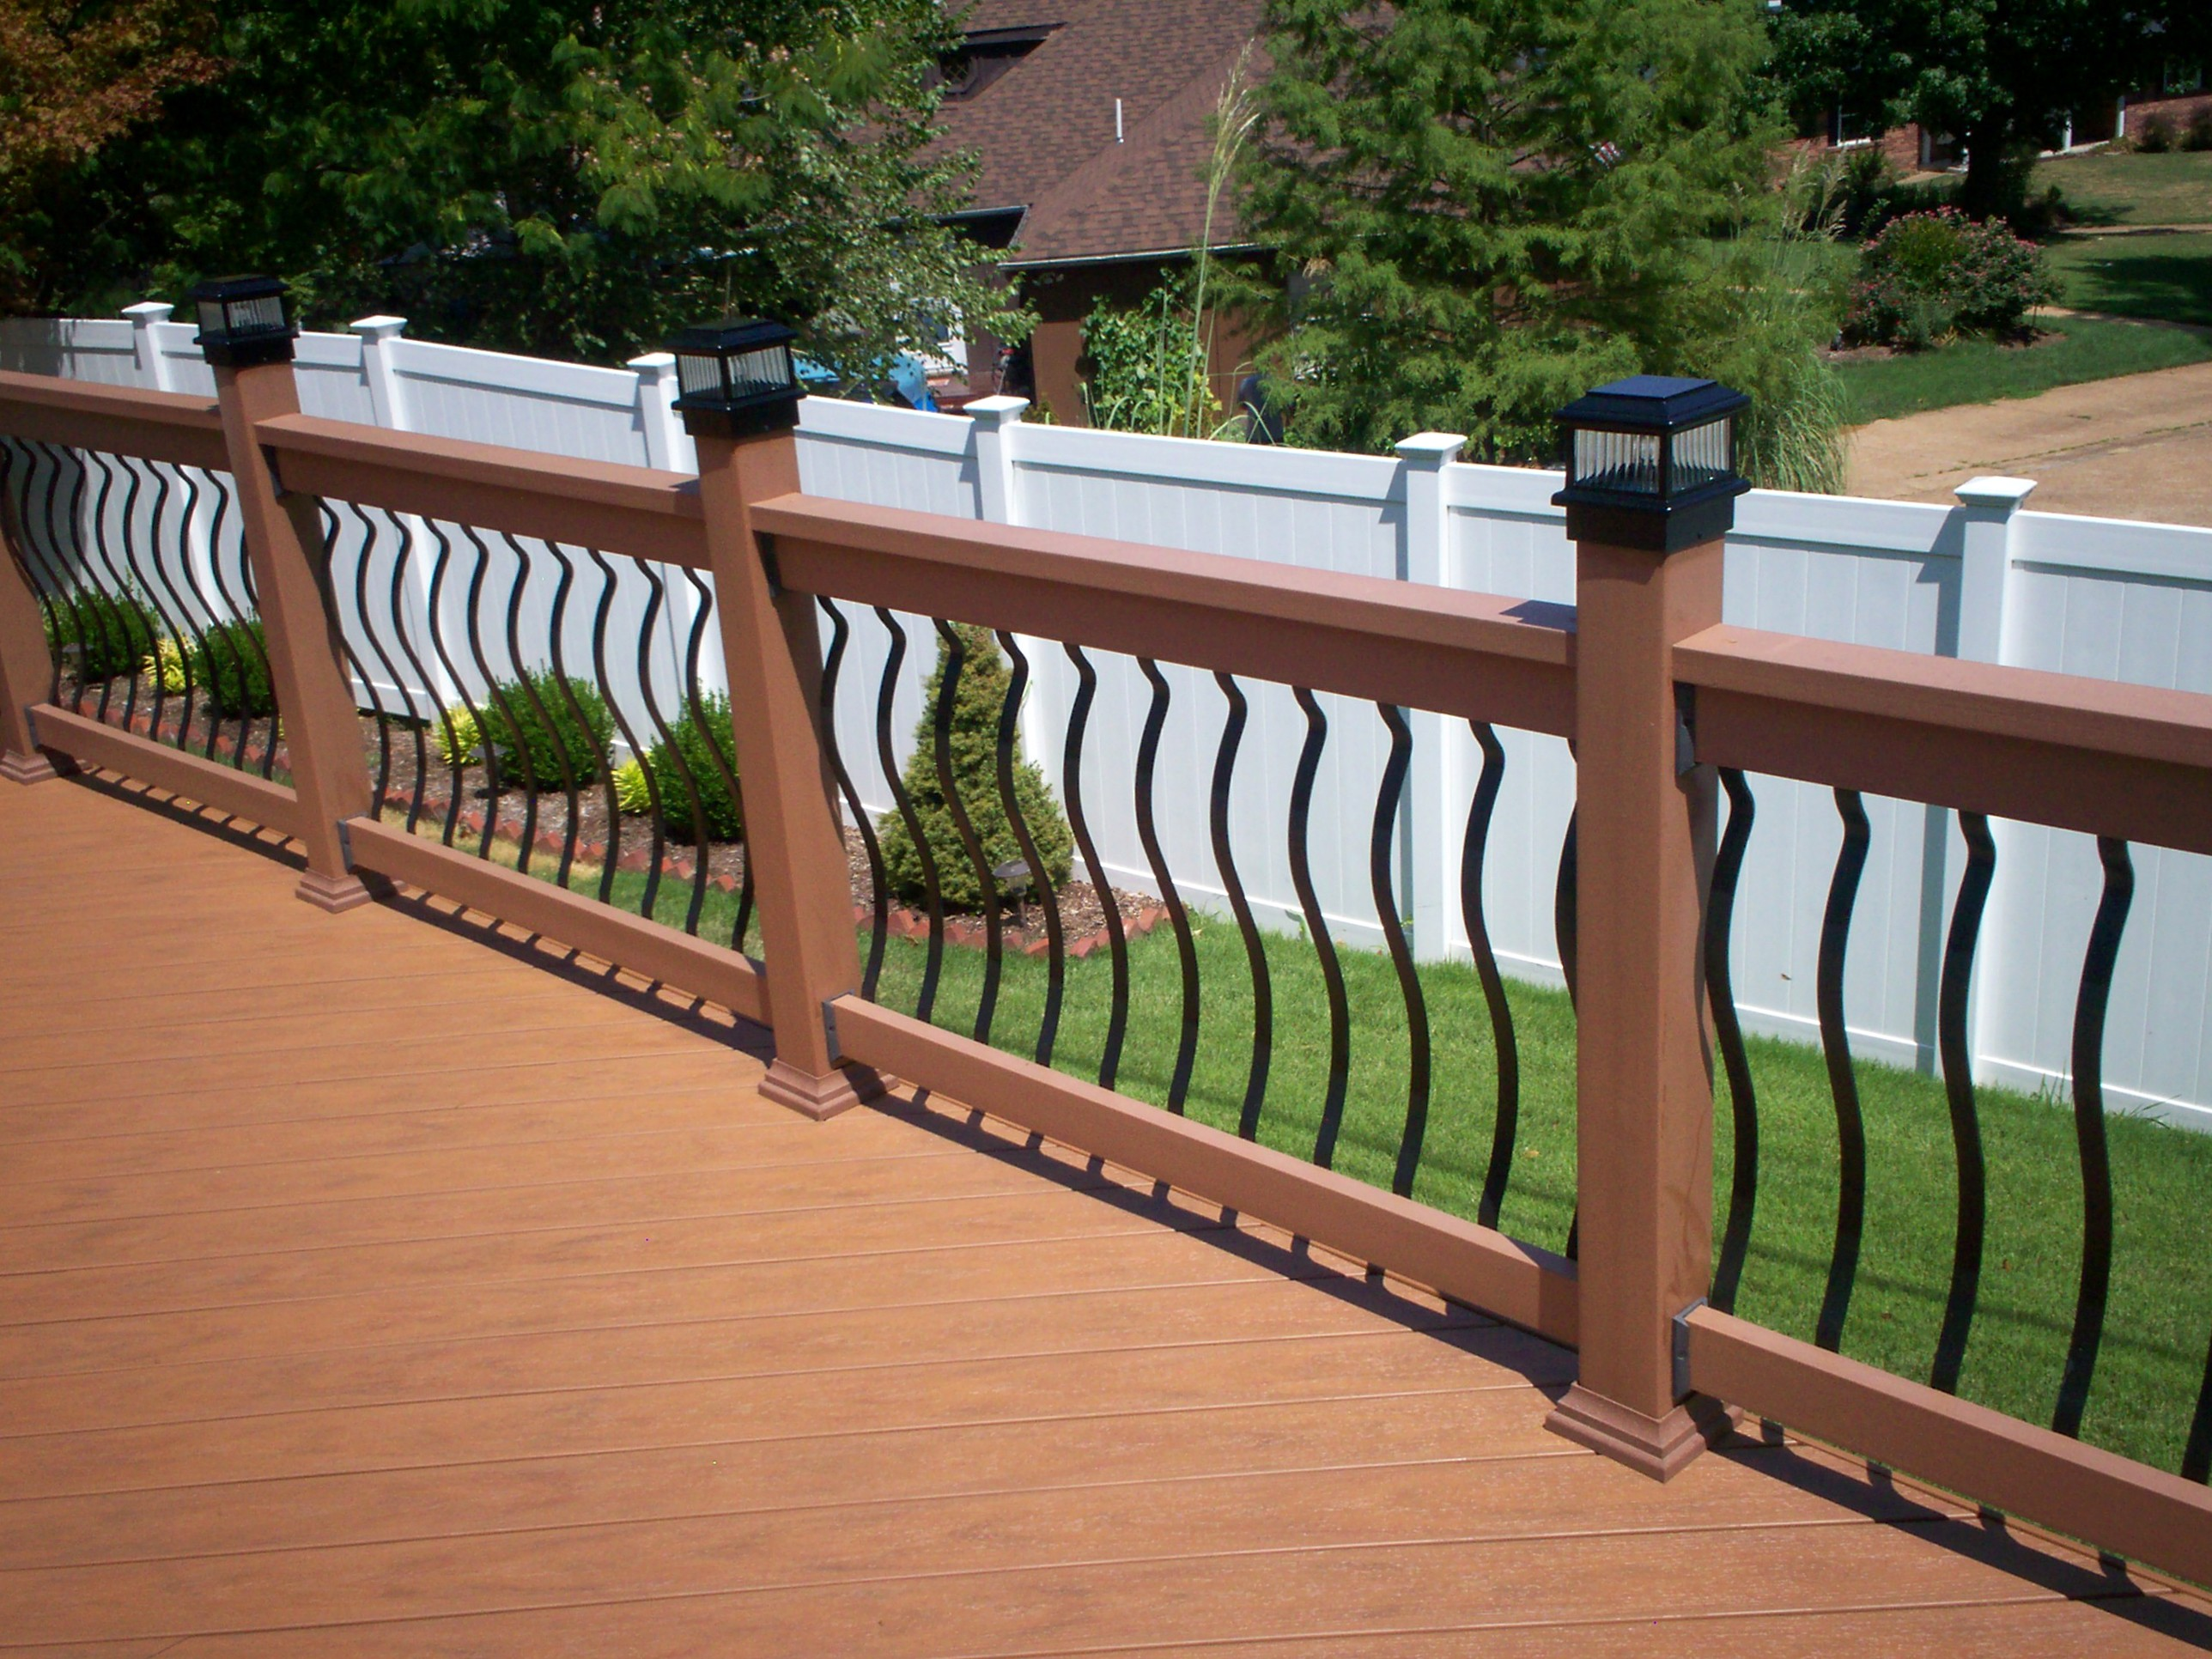 decorative balusters for deck in st louis ballwin area - Deck Railing Design Ideas